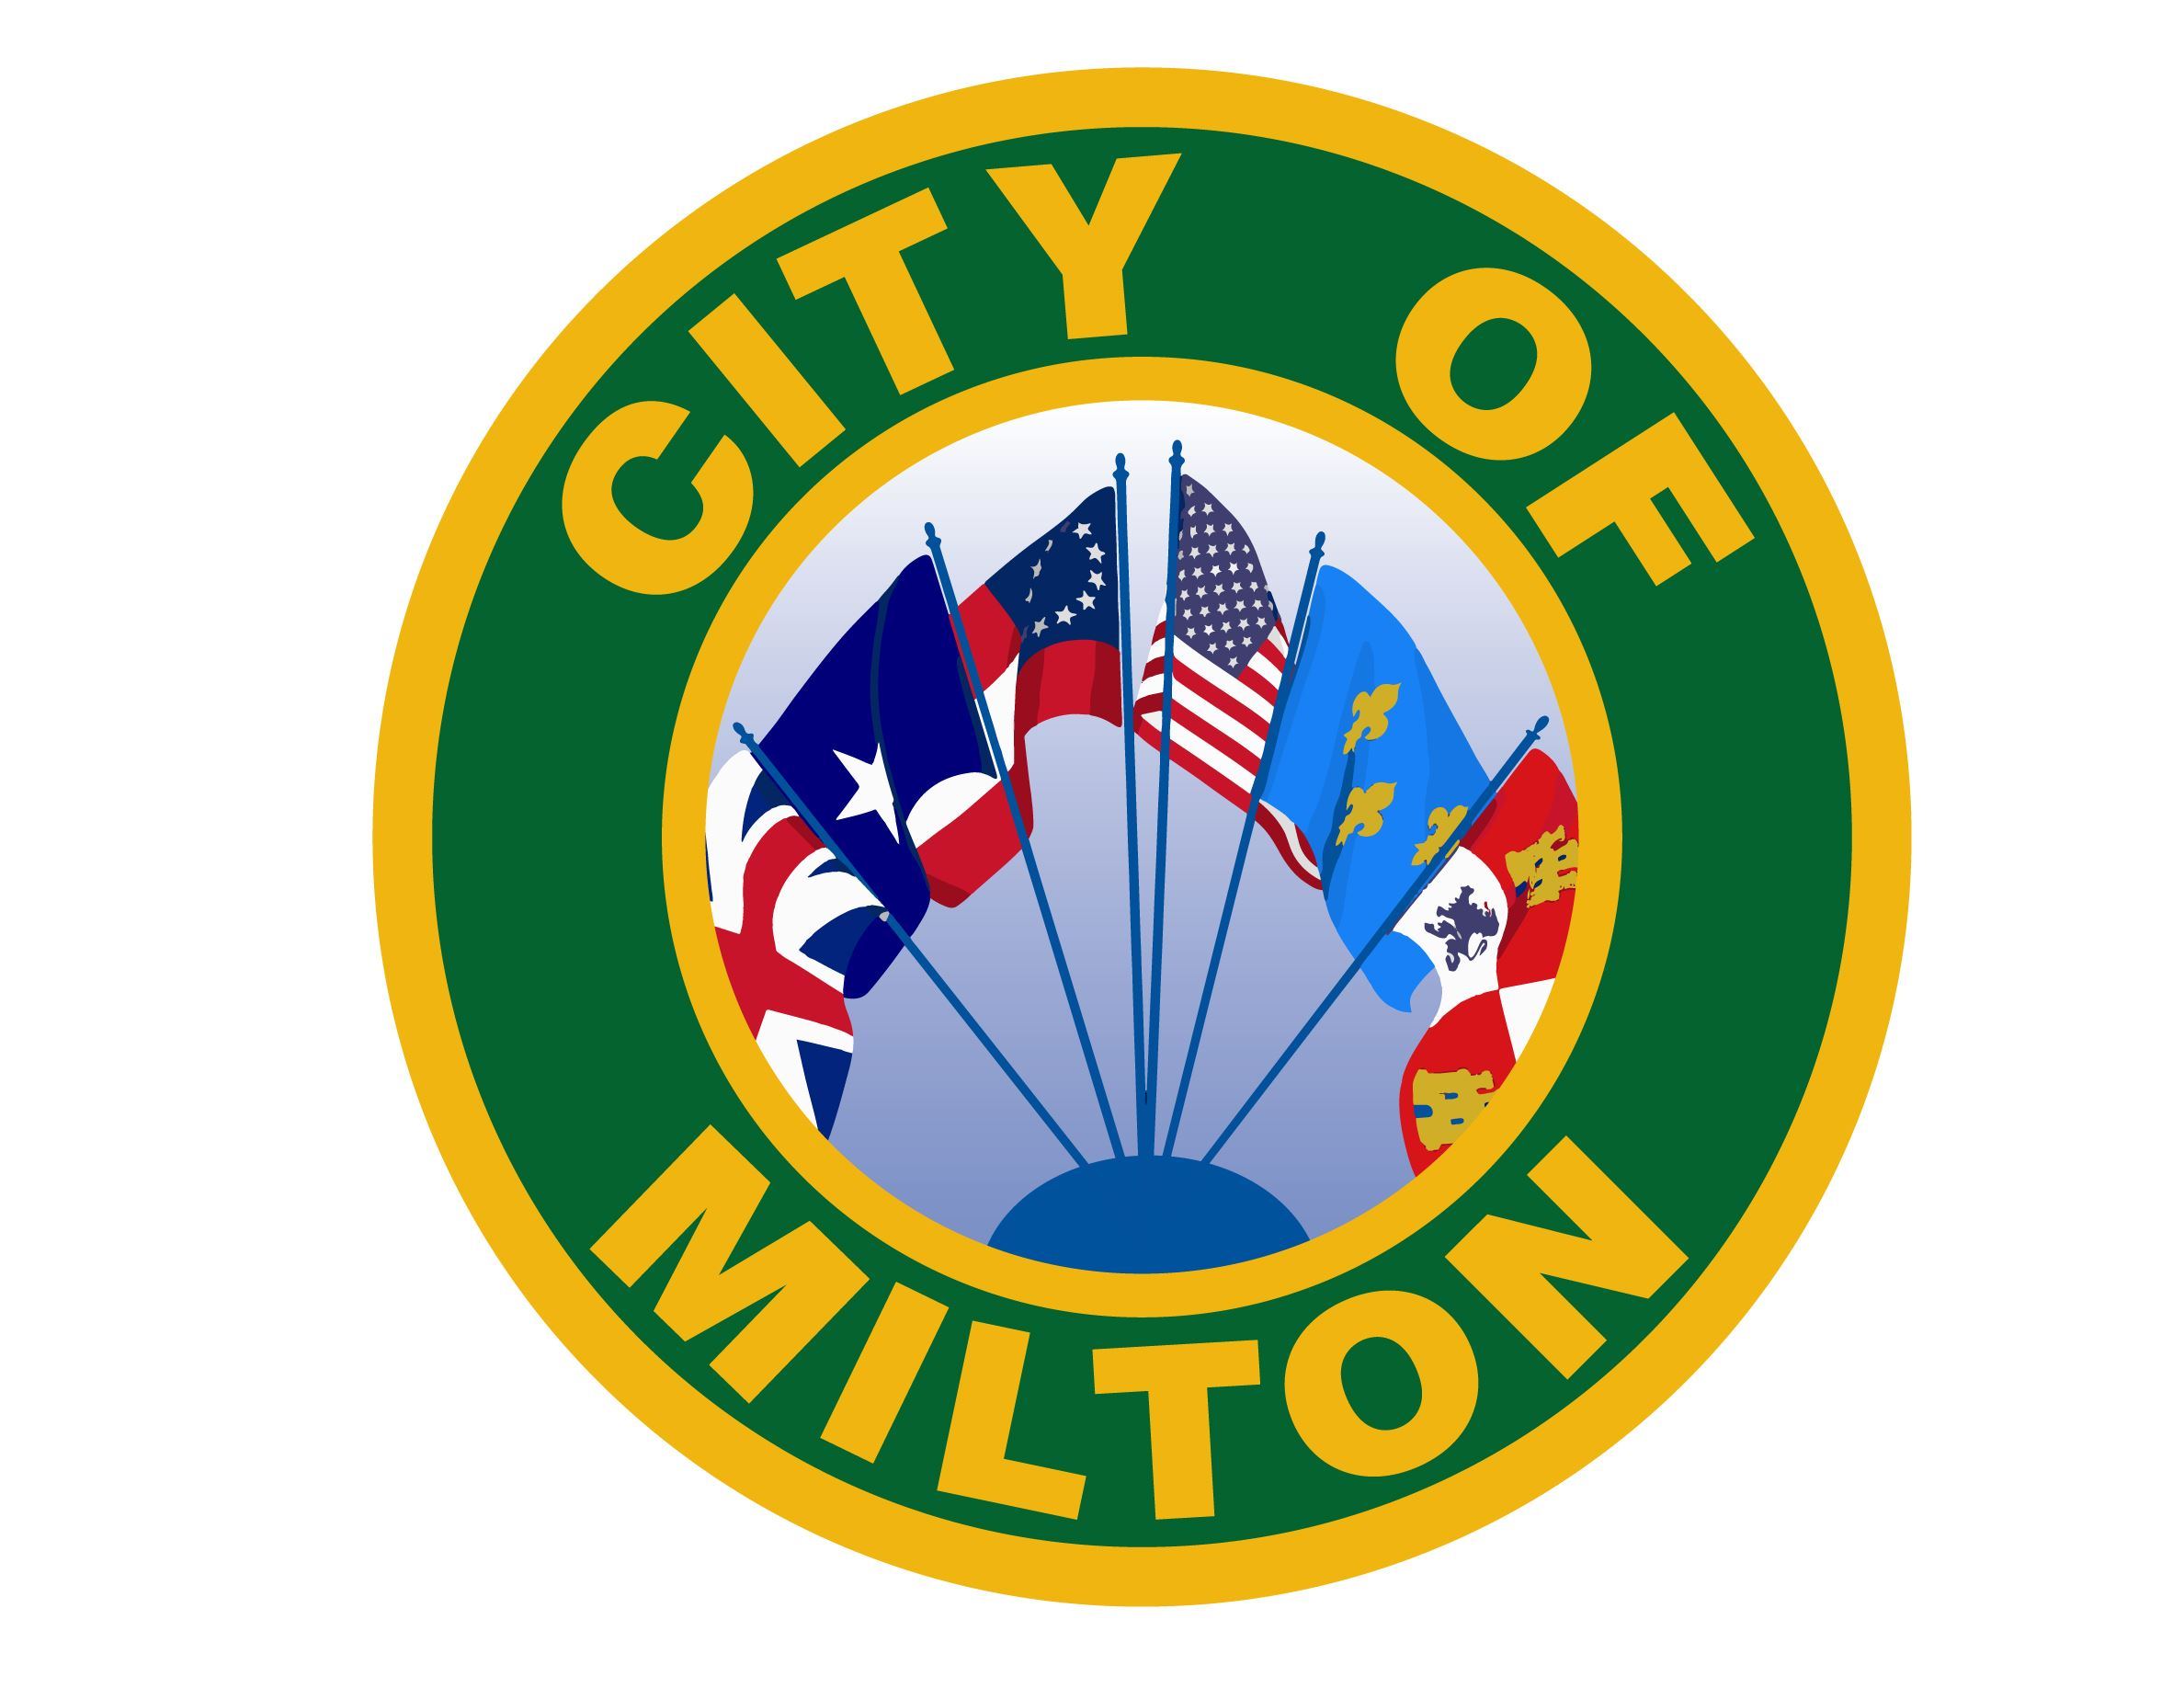 NewMiltonCityLogo_FINAL